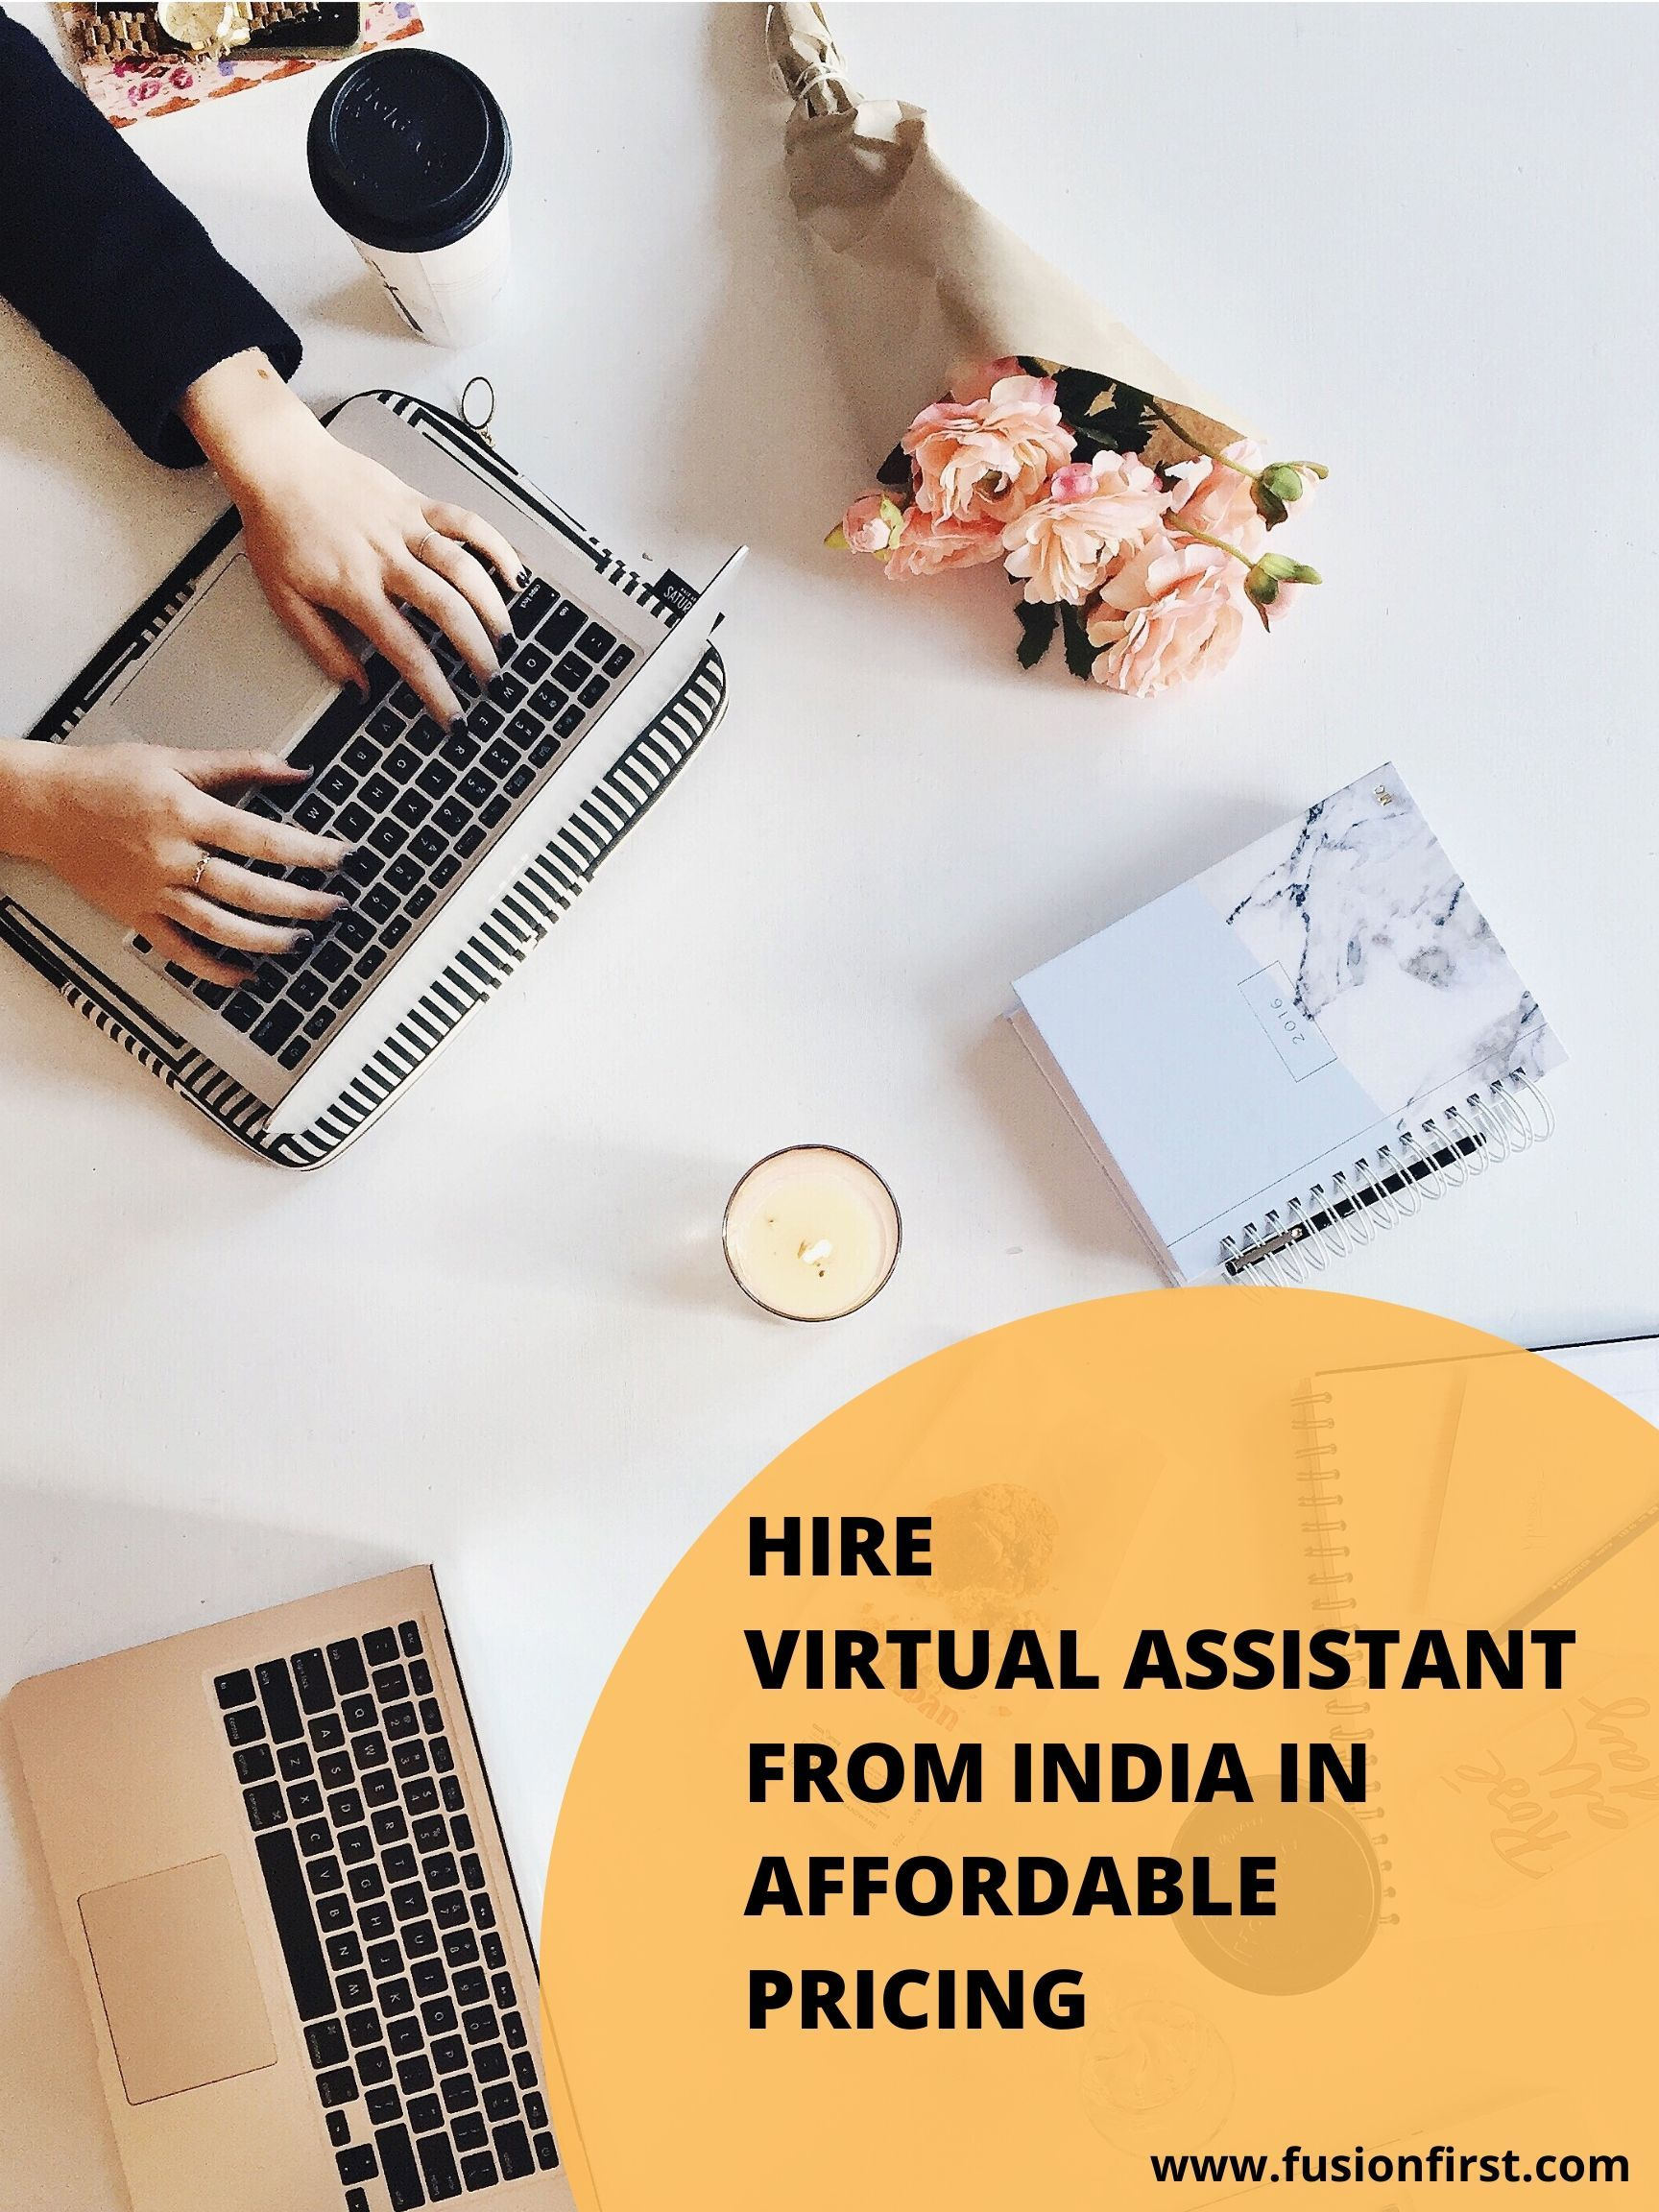 Hire virtual assistant from india affordable pricing